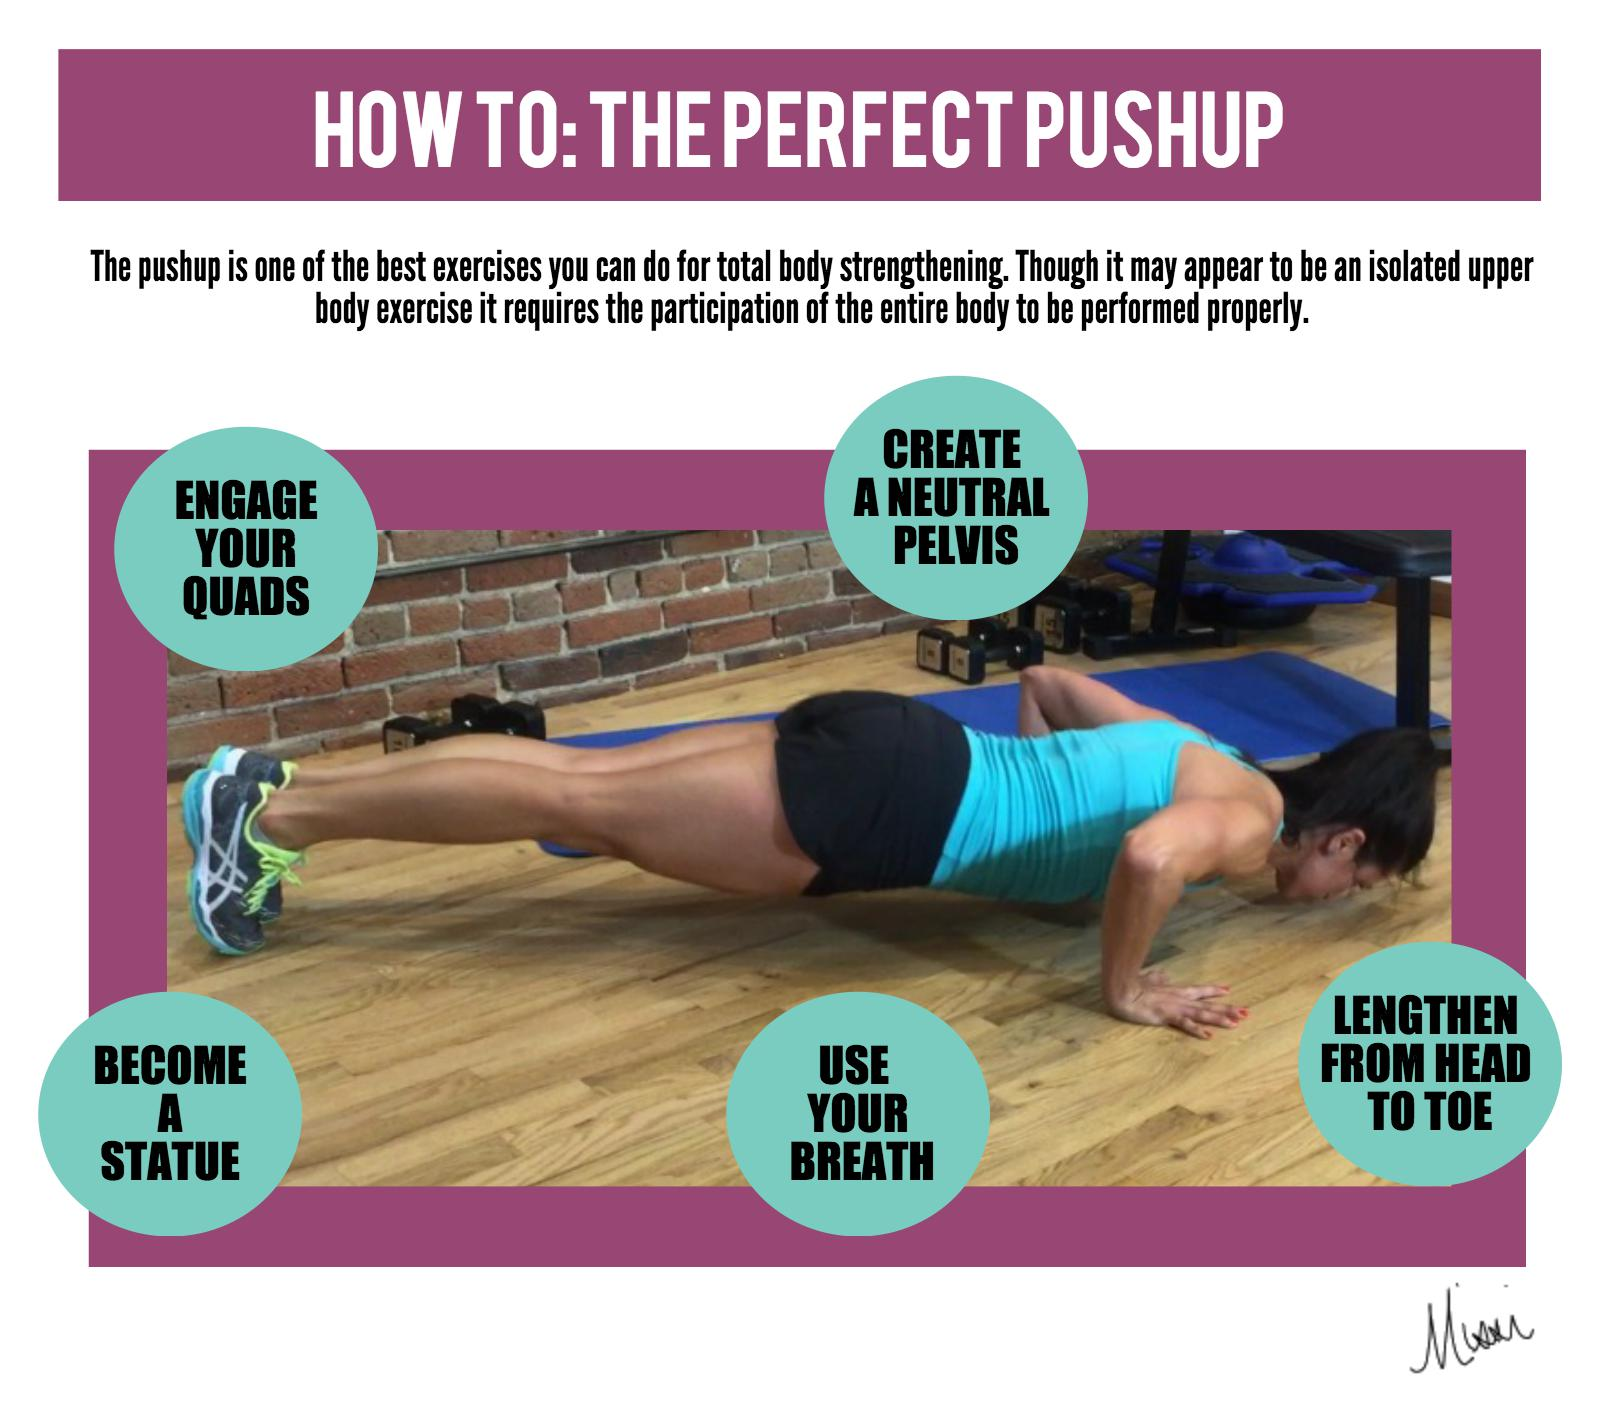 Perfect pushup infographic